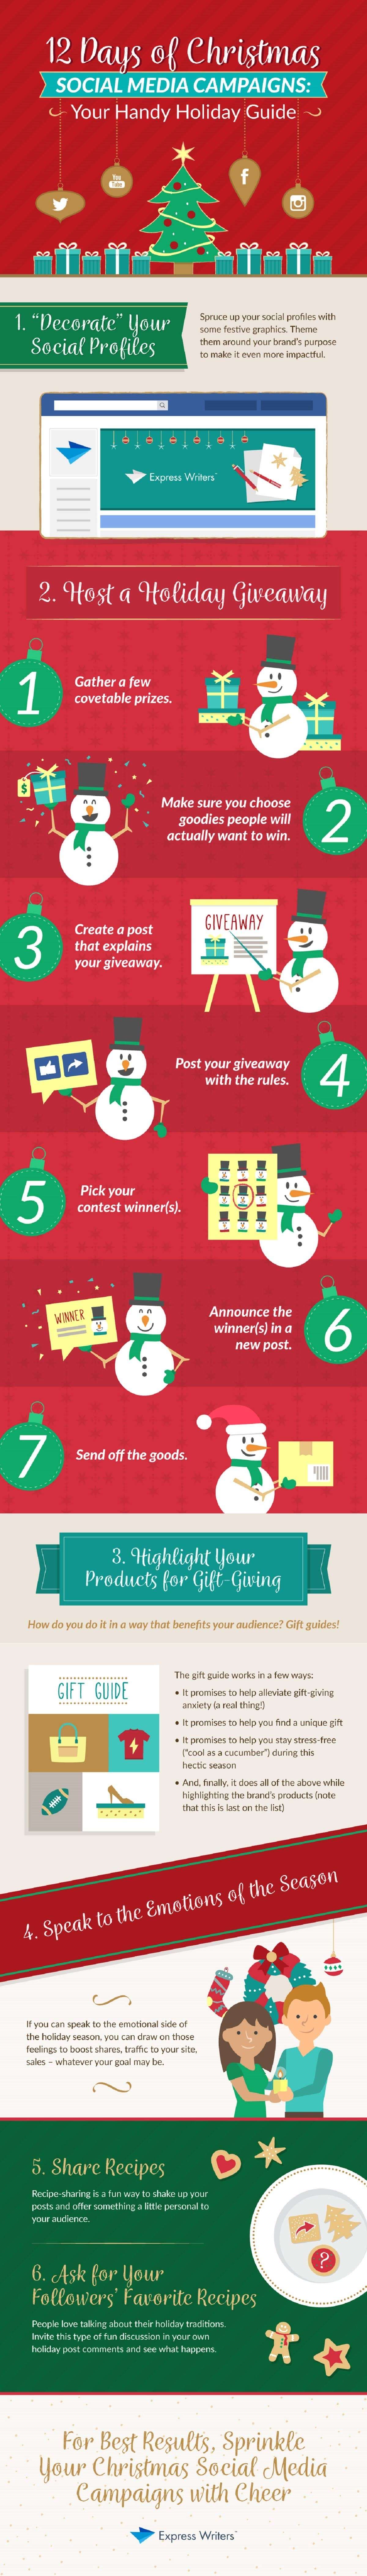 a-handy-holiday-content-guide-to-12-days-of-festivities-for-christmas-social-media-campaigns-infographic